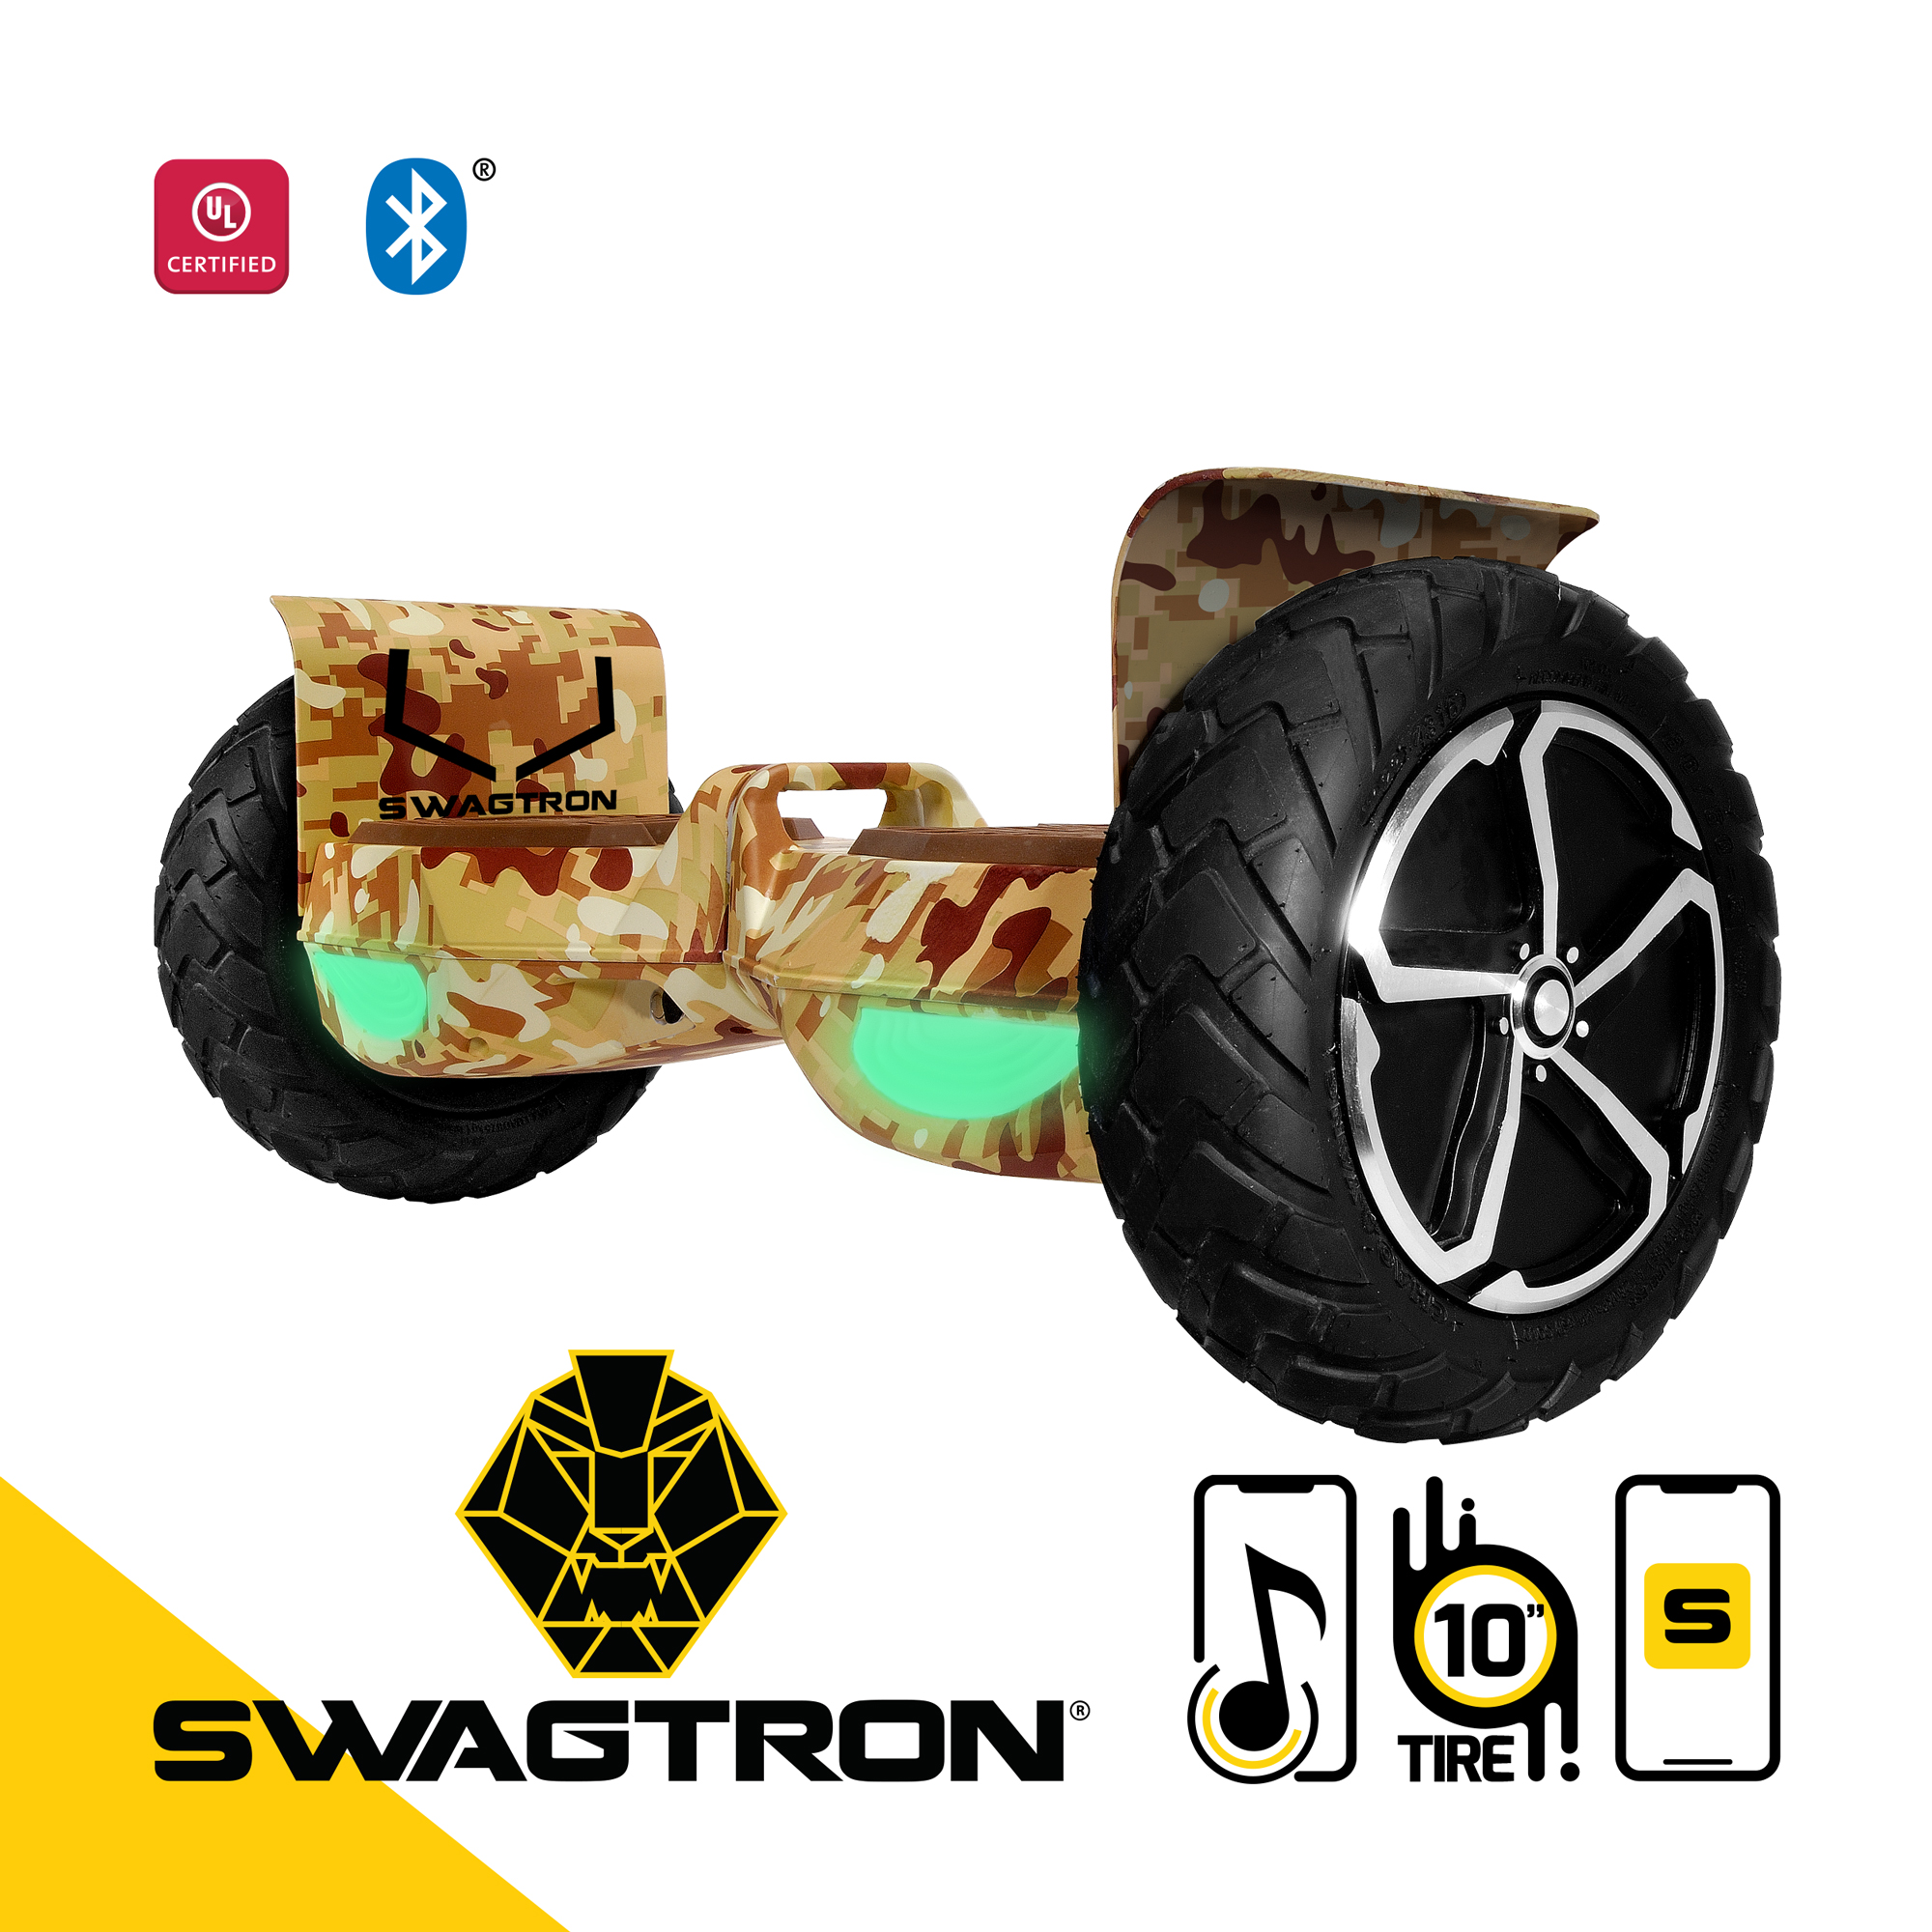 """SWAGTRON Swagboard Outlaw Off-Road T6 Hoverboard - Handles Over 380 LBS, Up to 12 MPH, Bluetooth Speaker, 10"""" Wheel"""